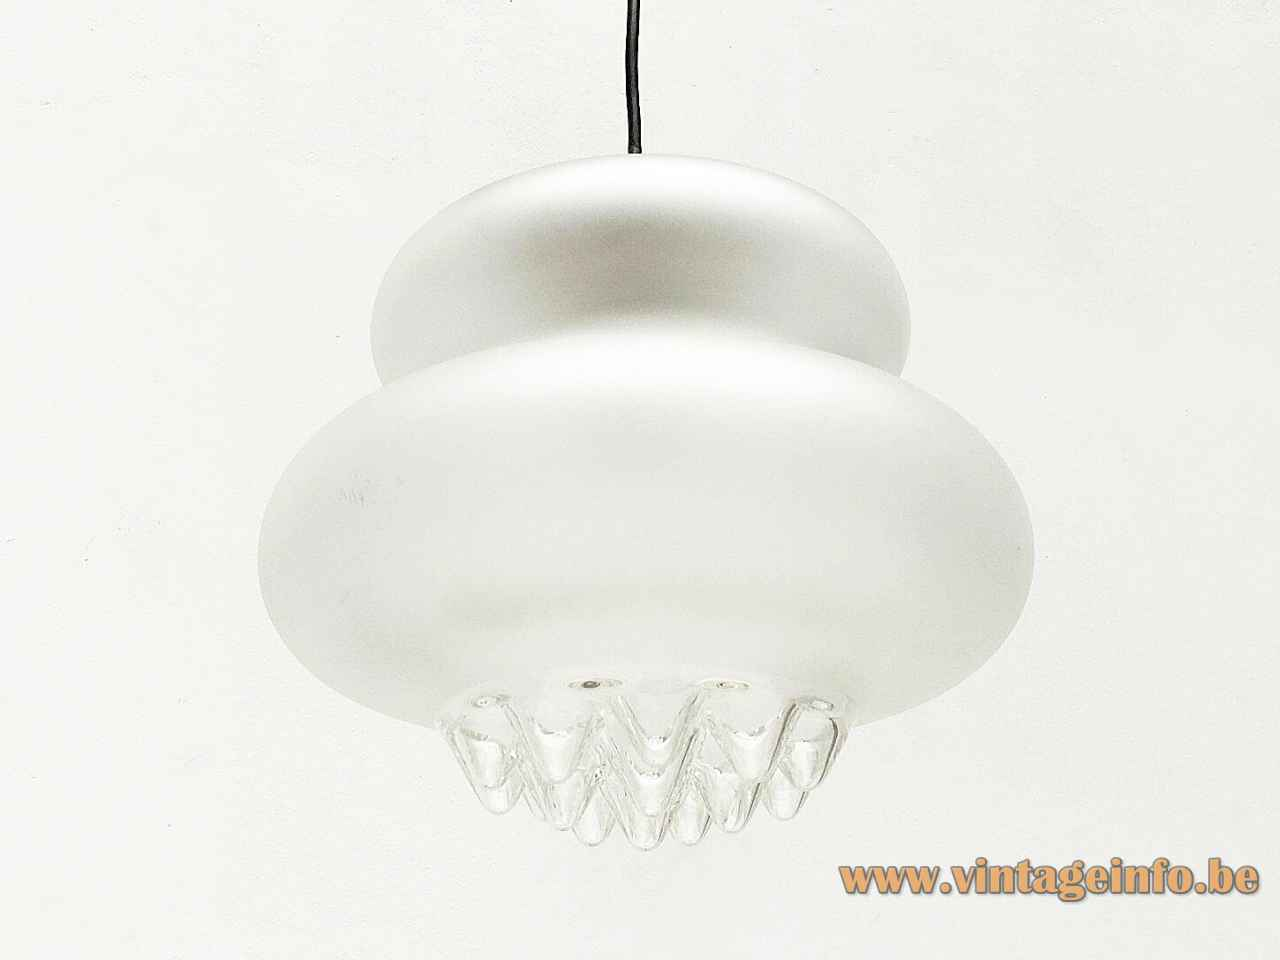 Peill + Putzler AH 43 pendant lamp frosted pumpkin glass lampshade clear droplet icicle bottom 1970s Germany